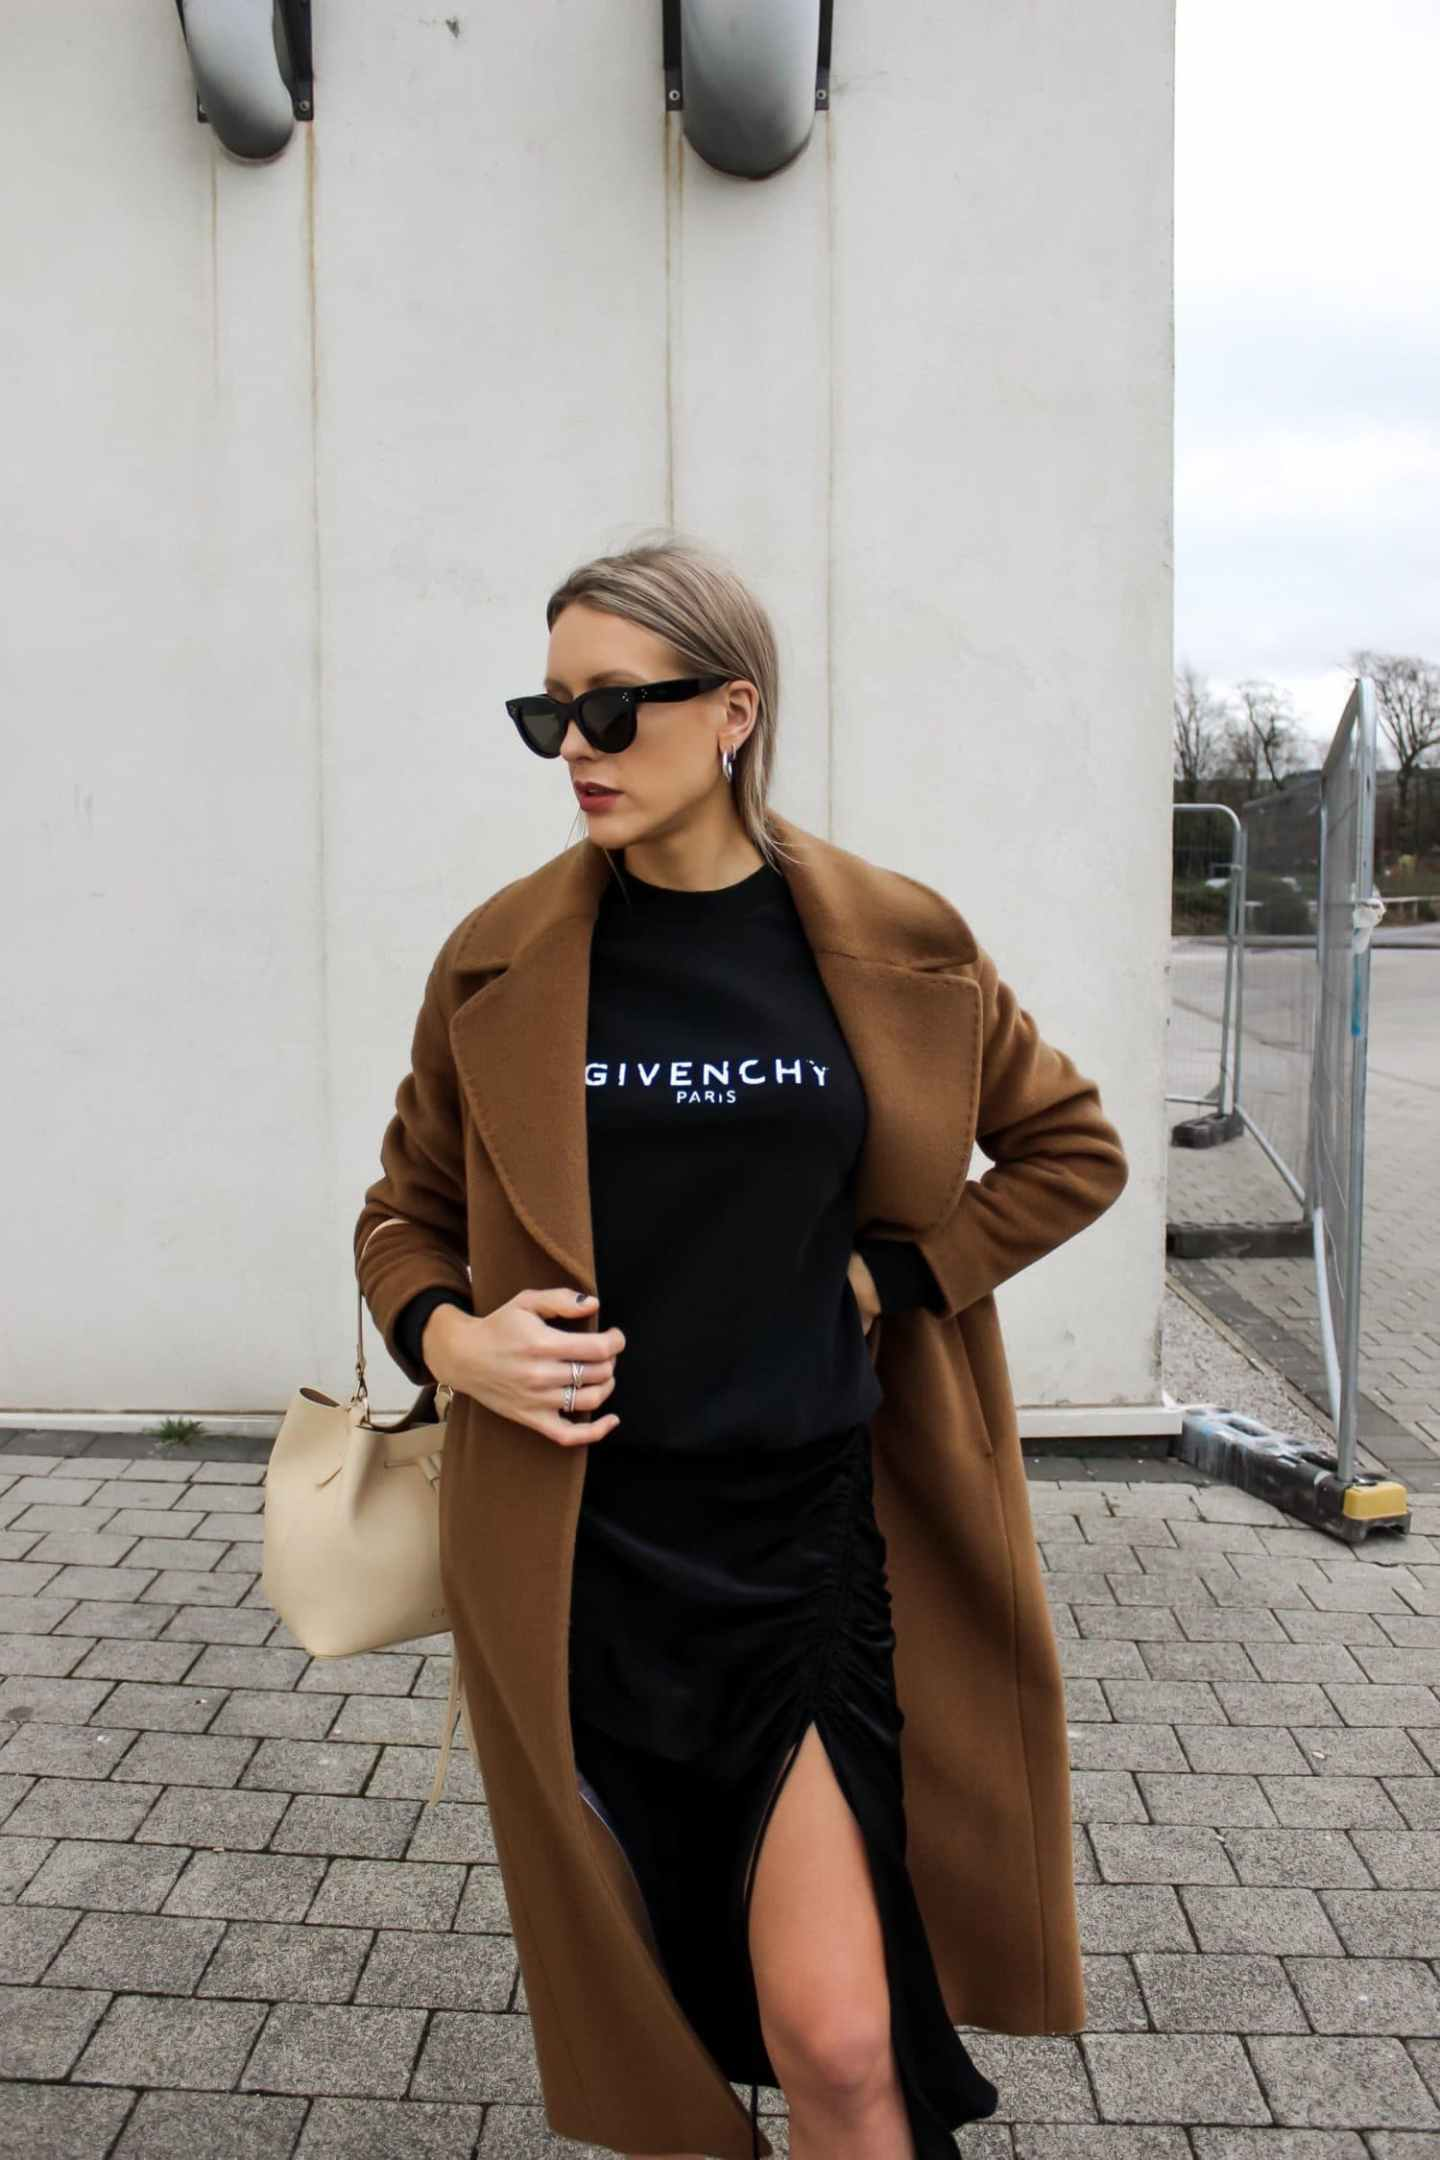 Givenchy street style with Farfetch — High Street Fashion